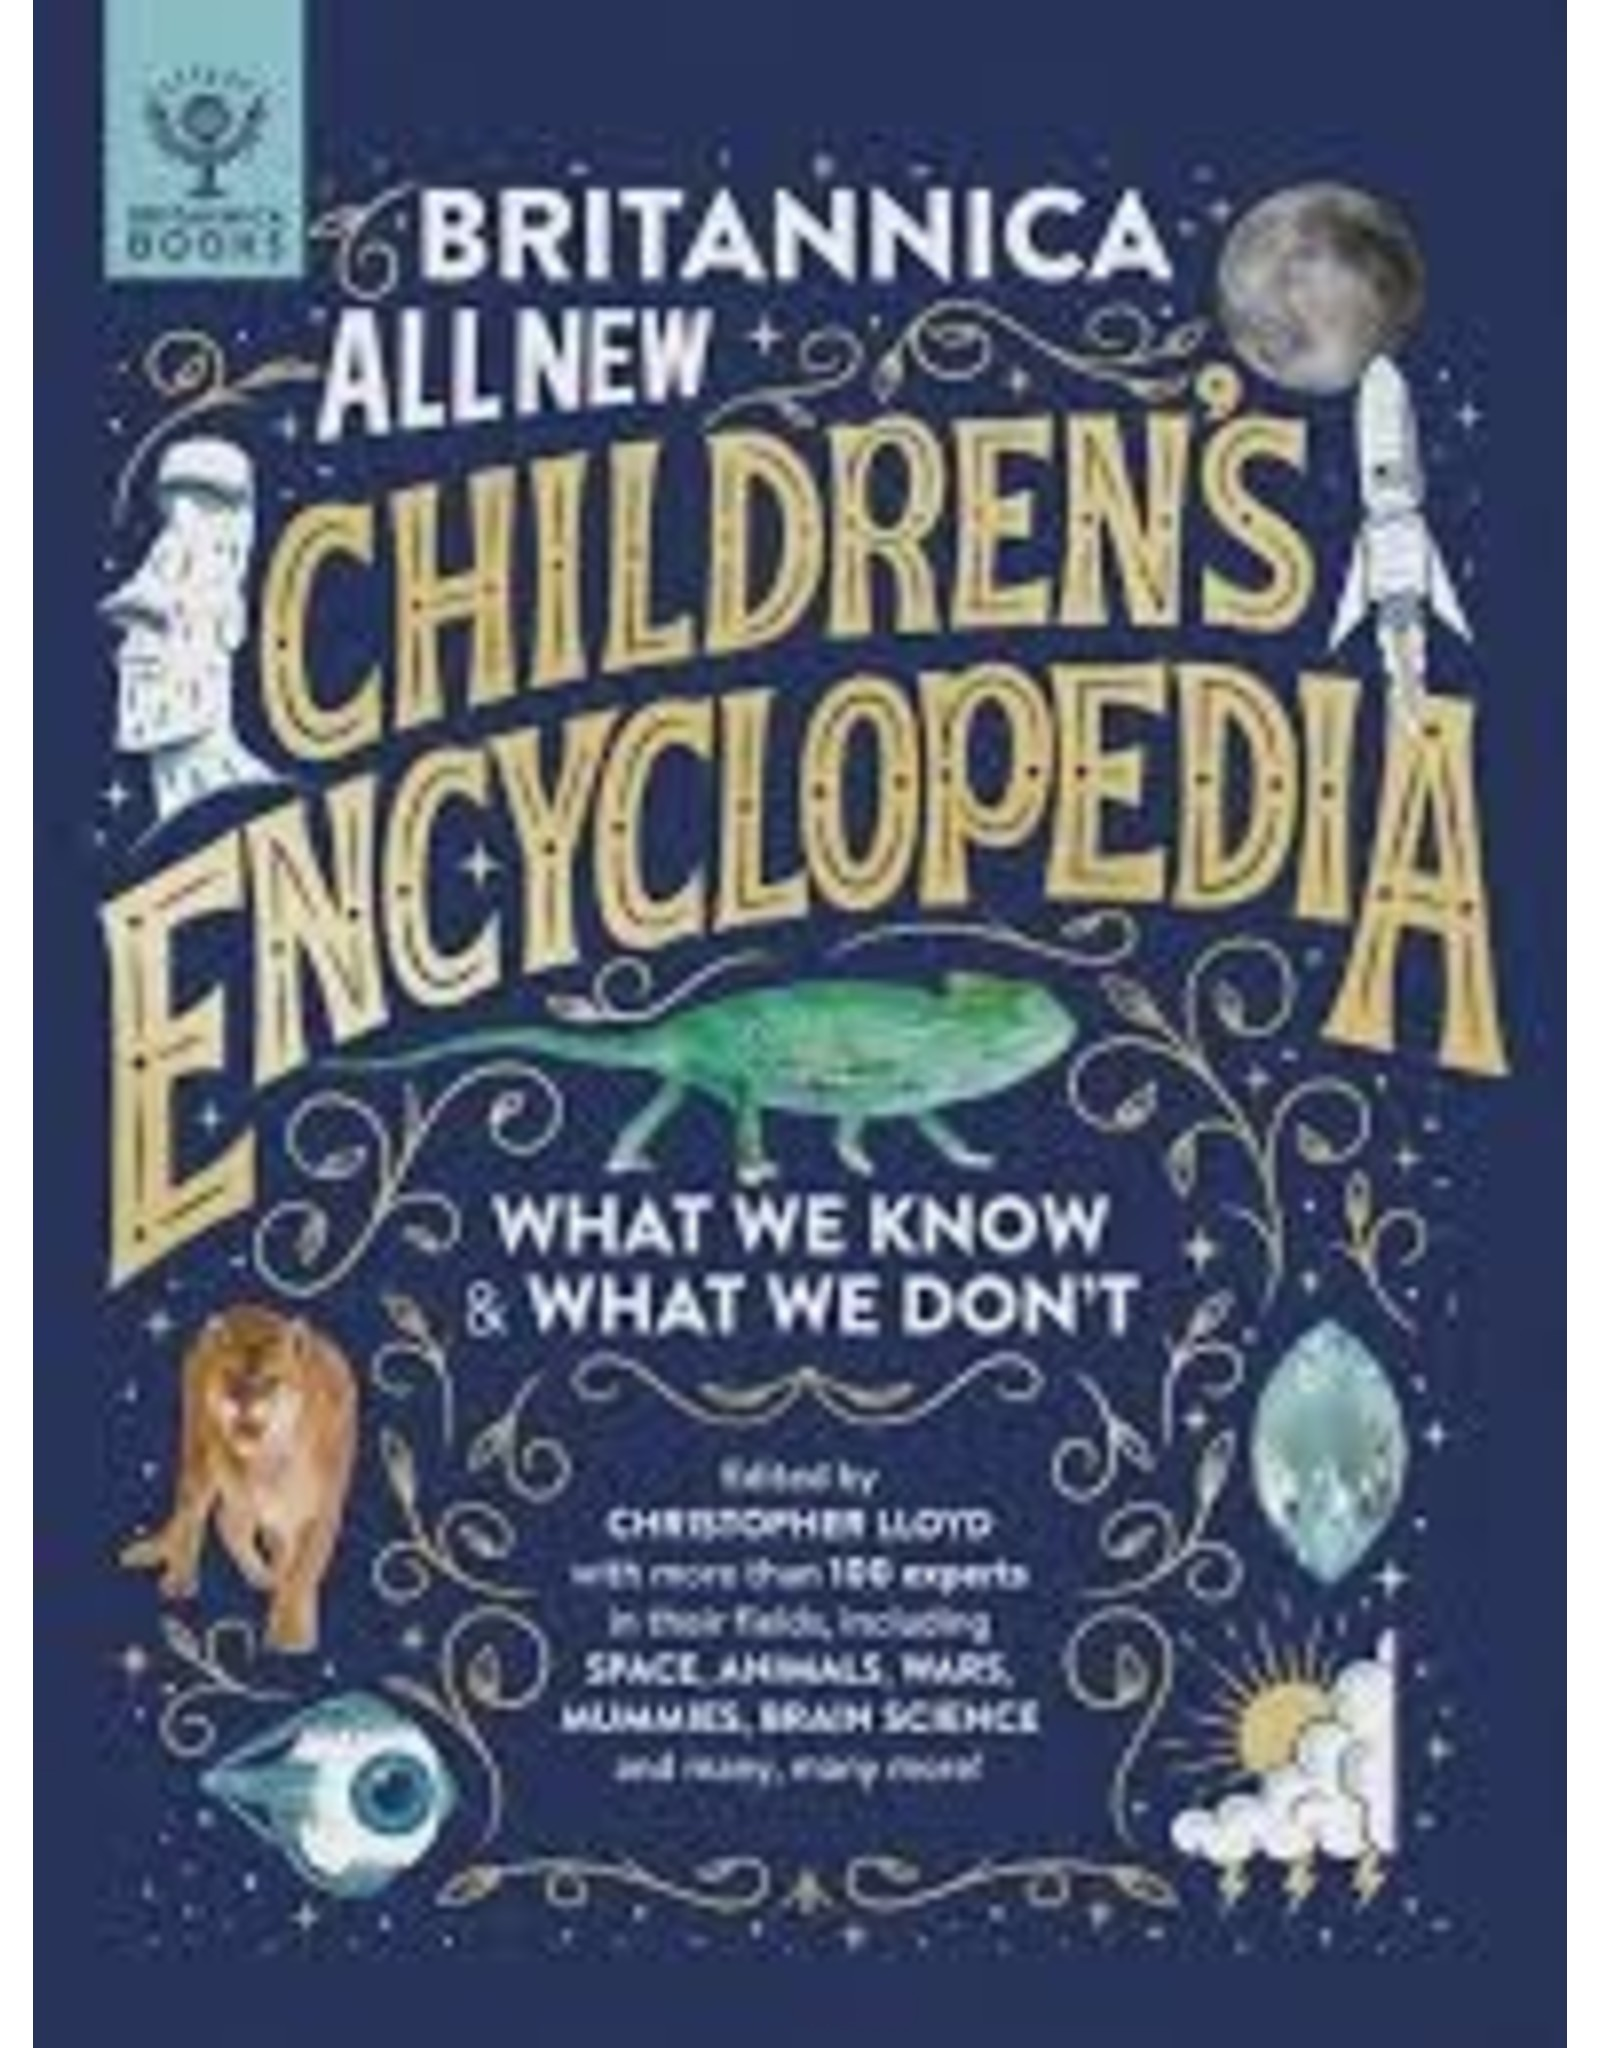 Books Britannica All New: Kids Encyclopedia What We Know  & What We Don't (Holiday Catalog 21)